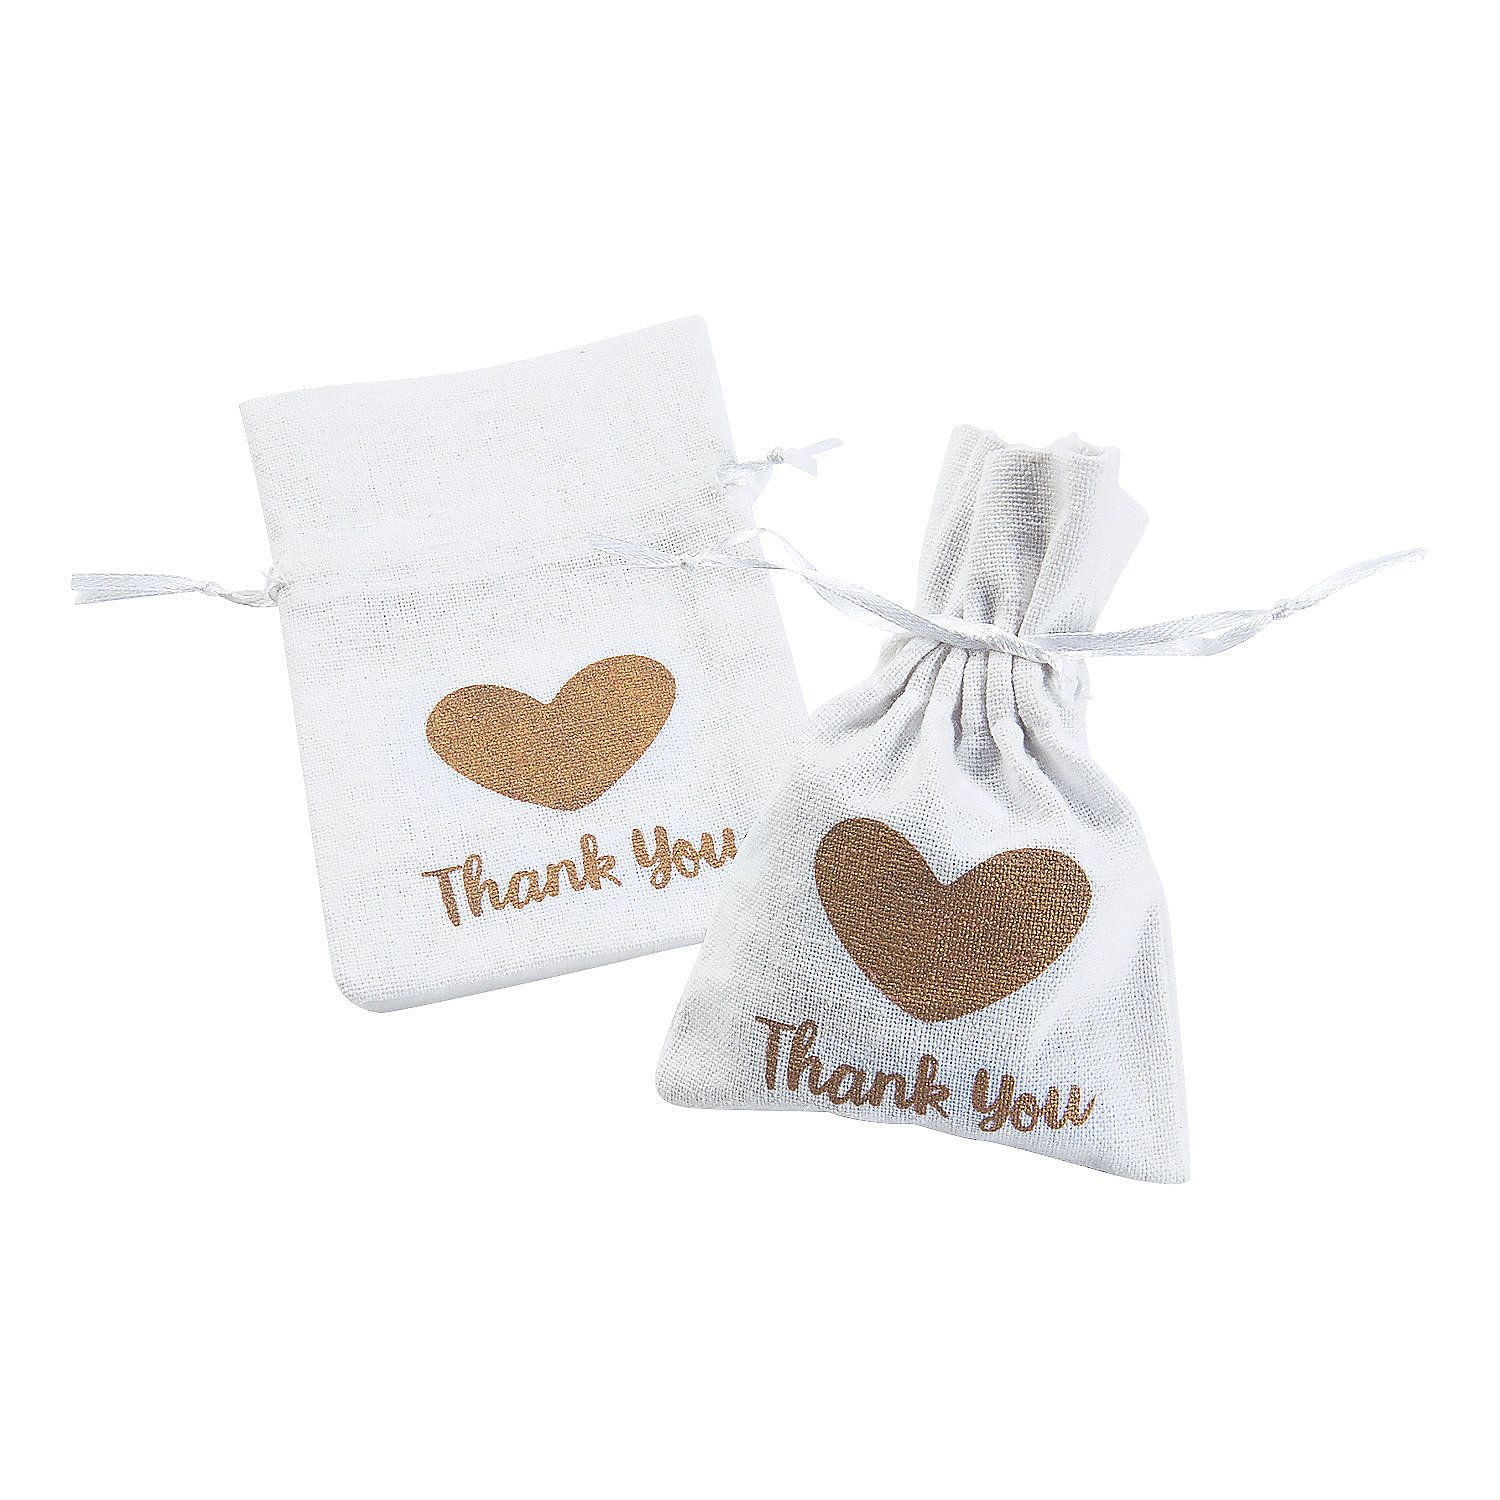 Small Thank You Drawstring Fabric Favor Bags | Favor bags, Favors ...